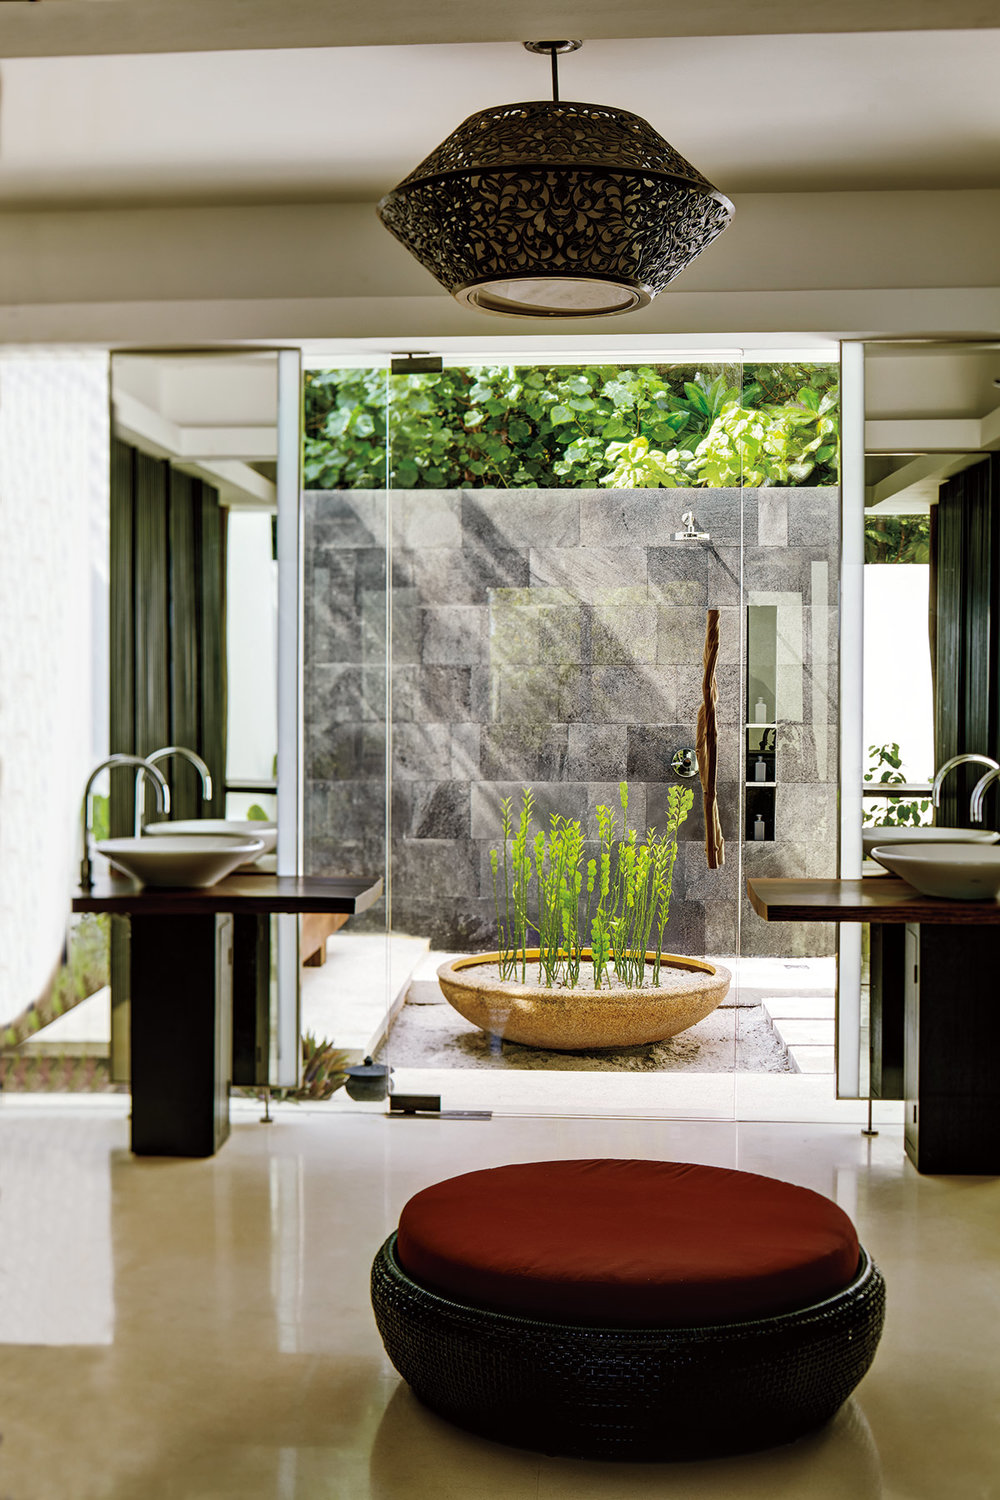 MLDPH_P066_Land_Villa_Bathroom_Hi-Res.jpg